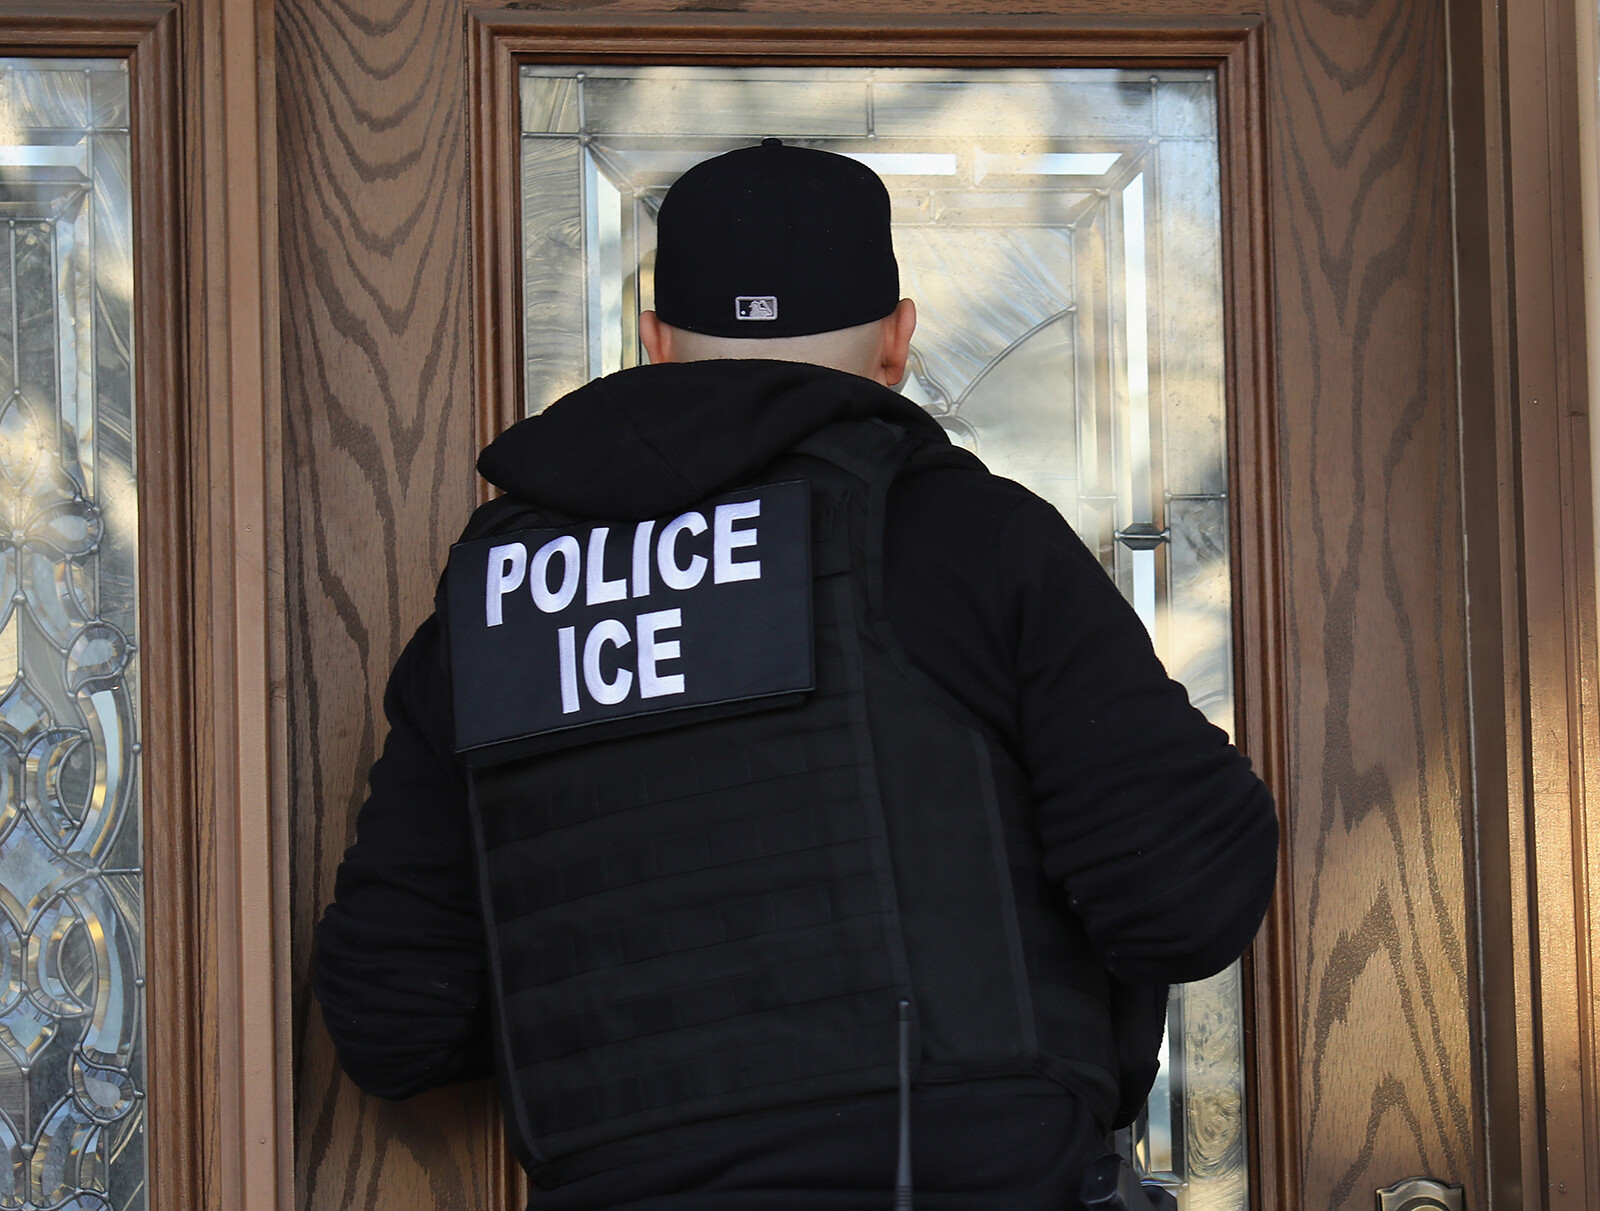 <i>John Moore/Getty Images</i><br/>The Biden administration is ending mass worksite immigration raids and instead focusing on employers who exploit undocumented workers